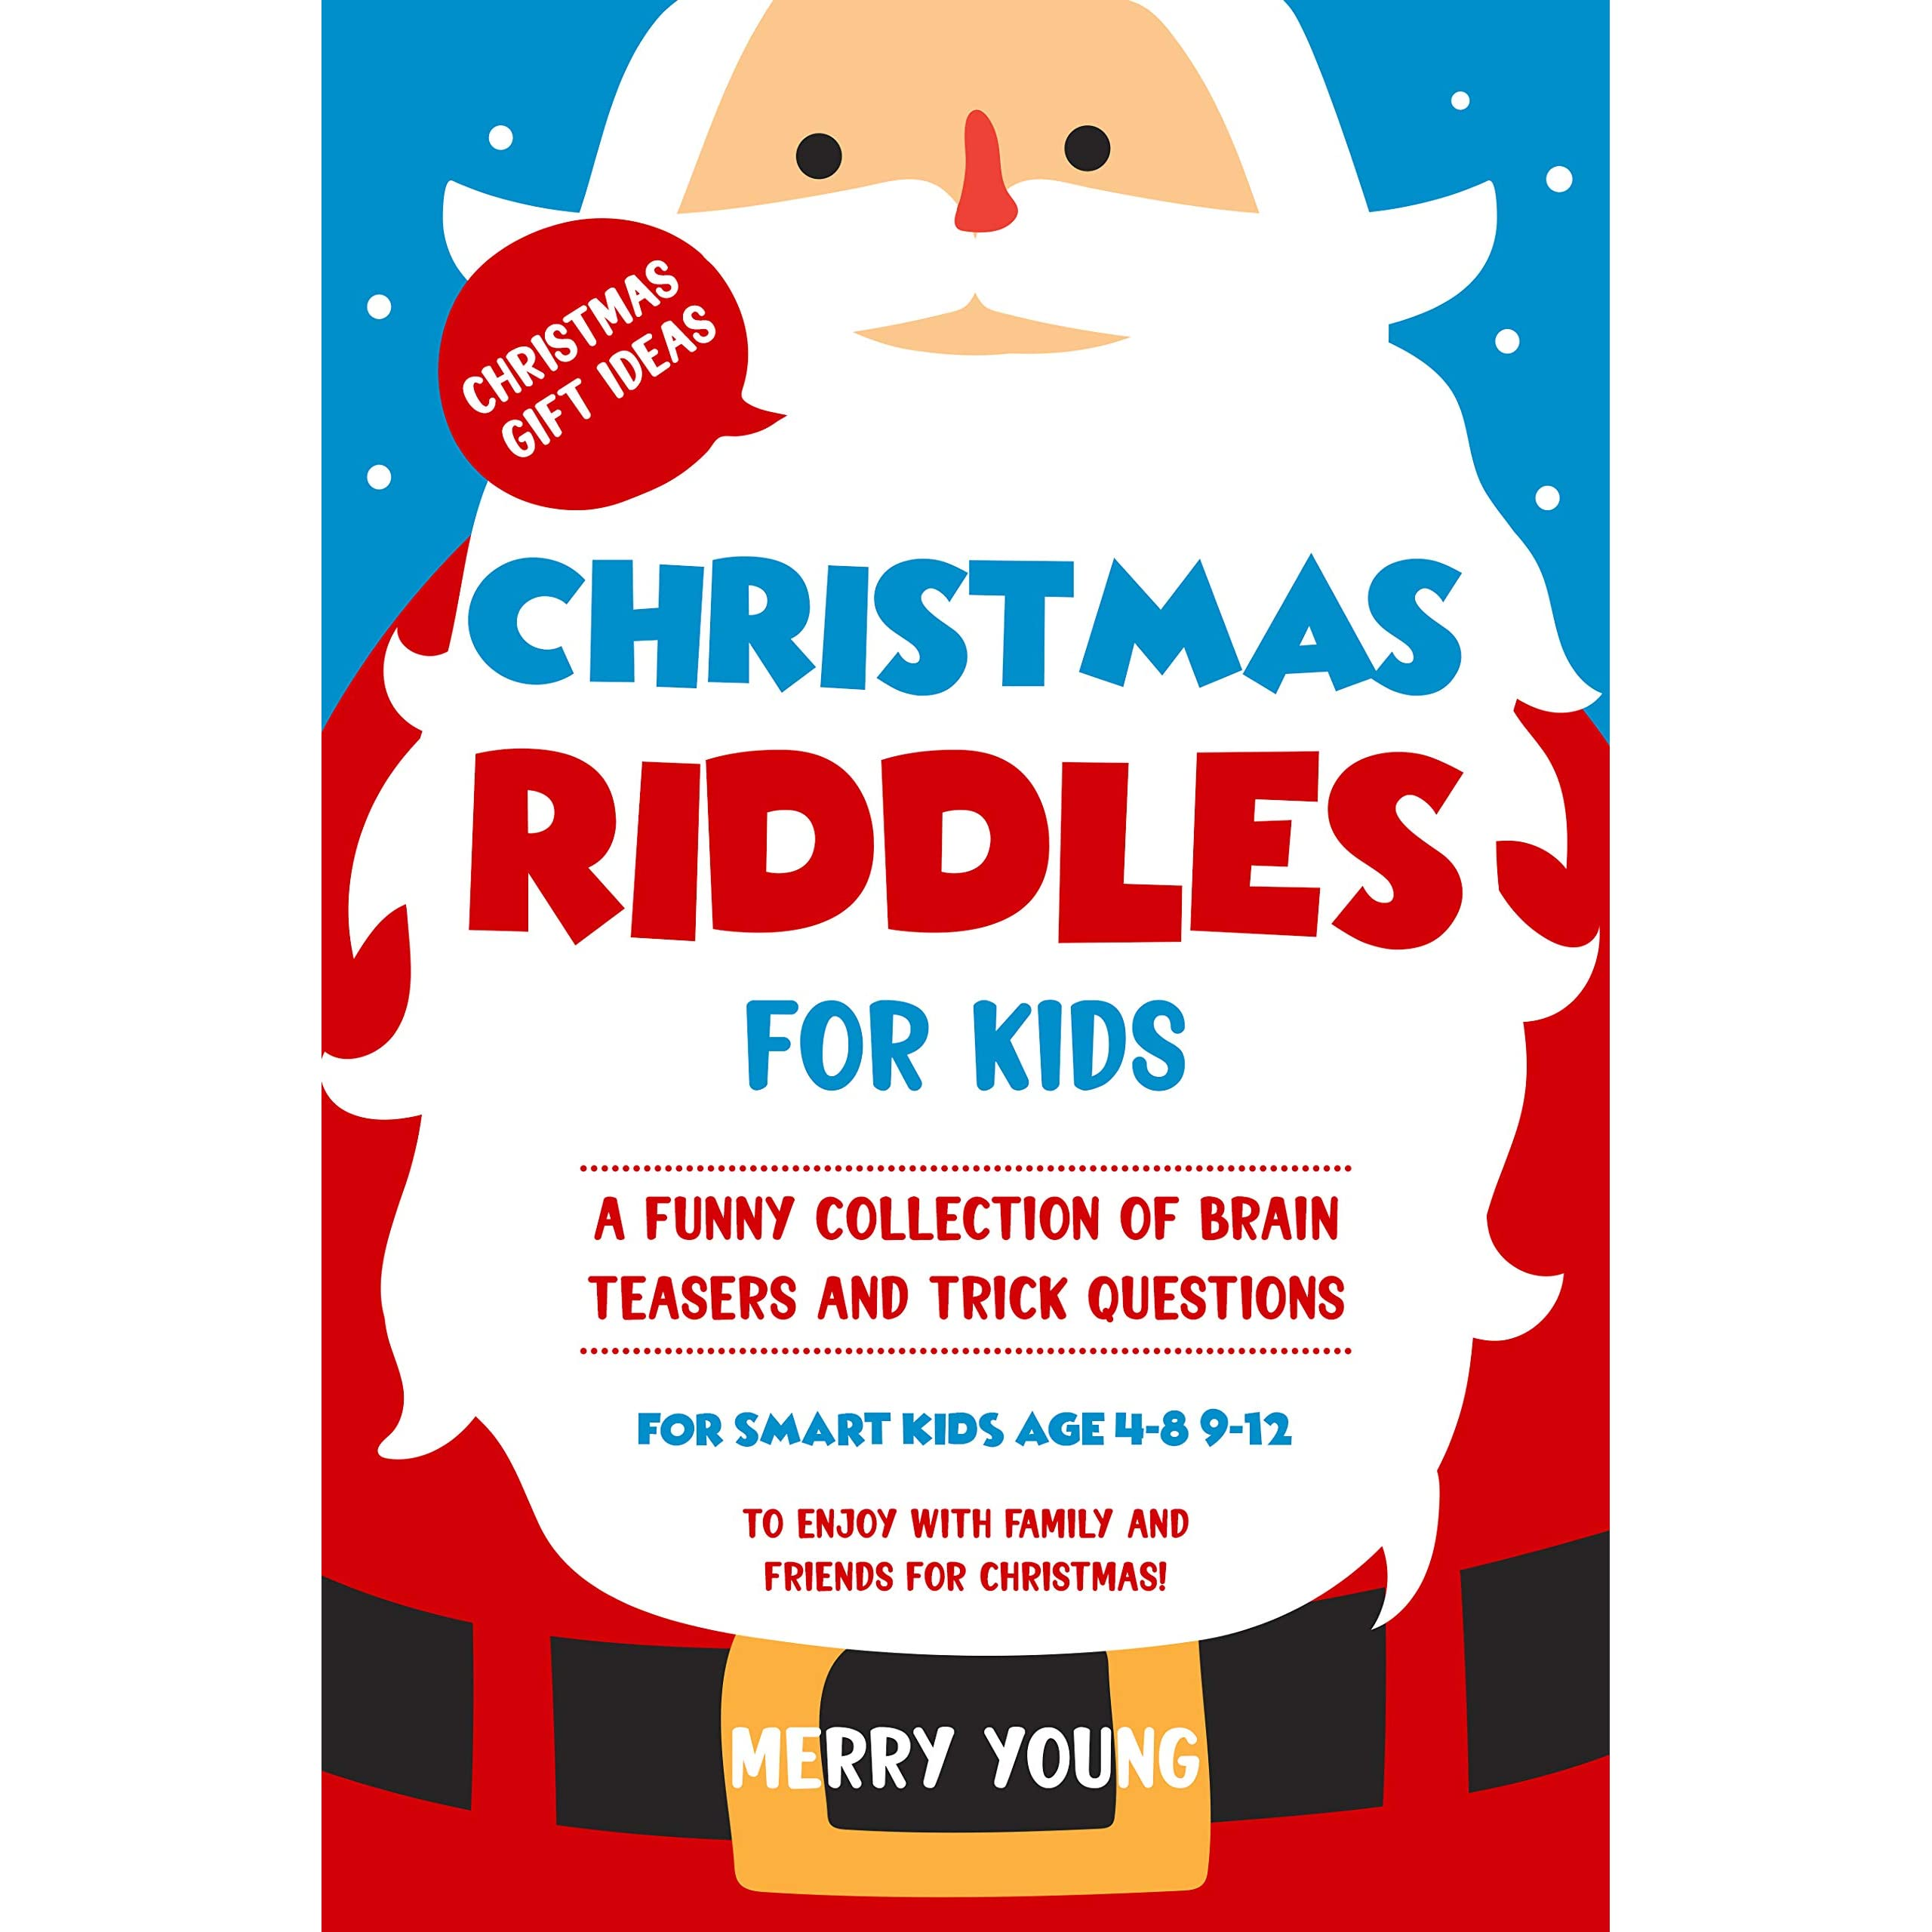 Christmas Riddles For Kids A Funny Collection Of Brain Teasers And Trick Questions For Smart Kids Age 4 8 9 12 To Enjoy With Family And Friends For Christmas By Merry Young